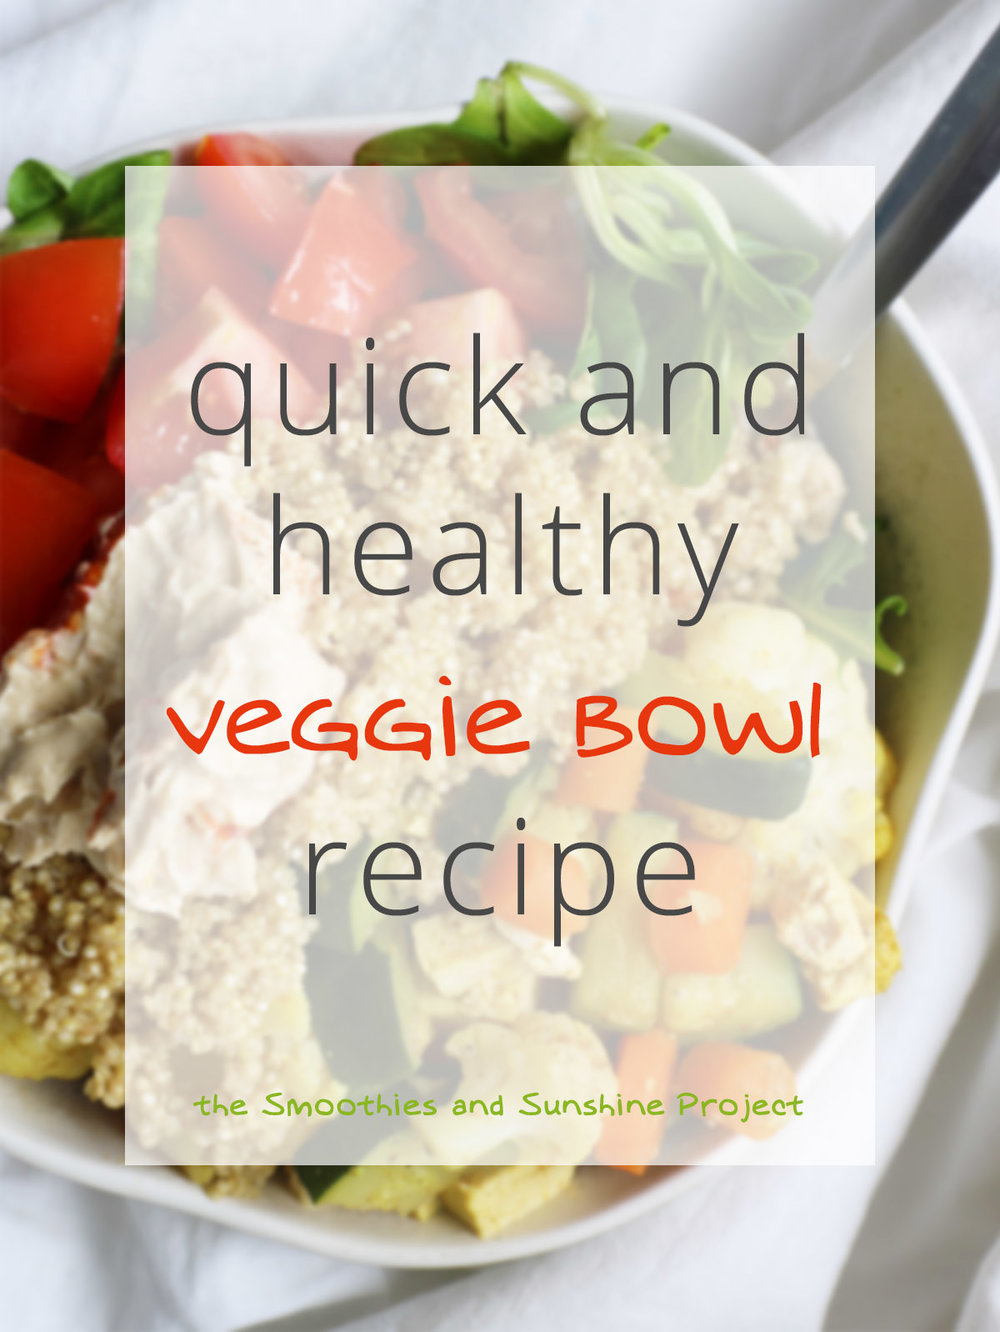 quick-and-healthy-veggie-bowl-recipe.jpeg